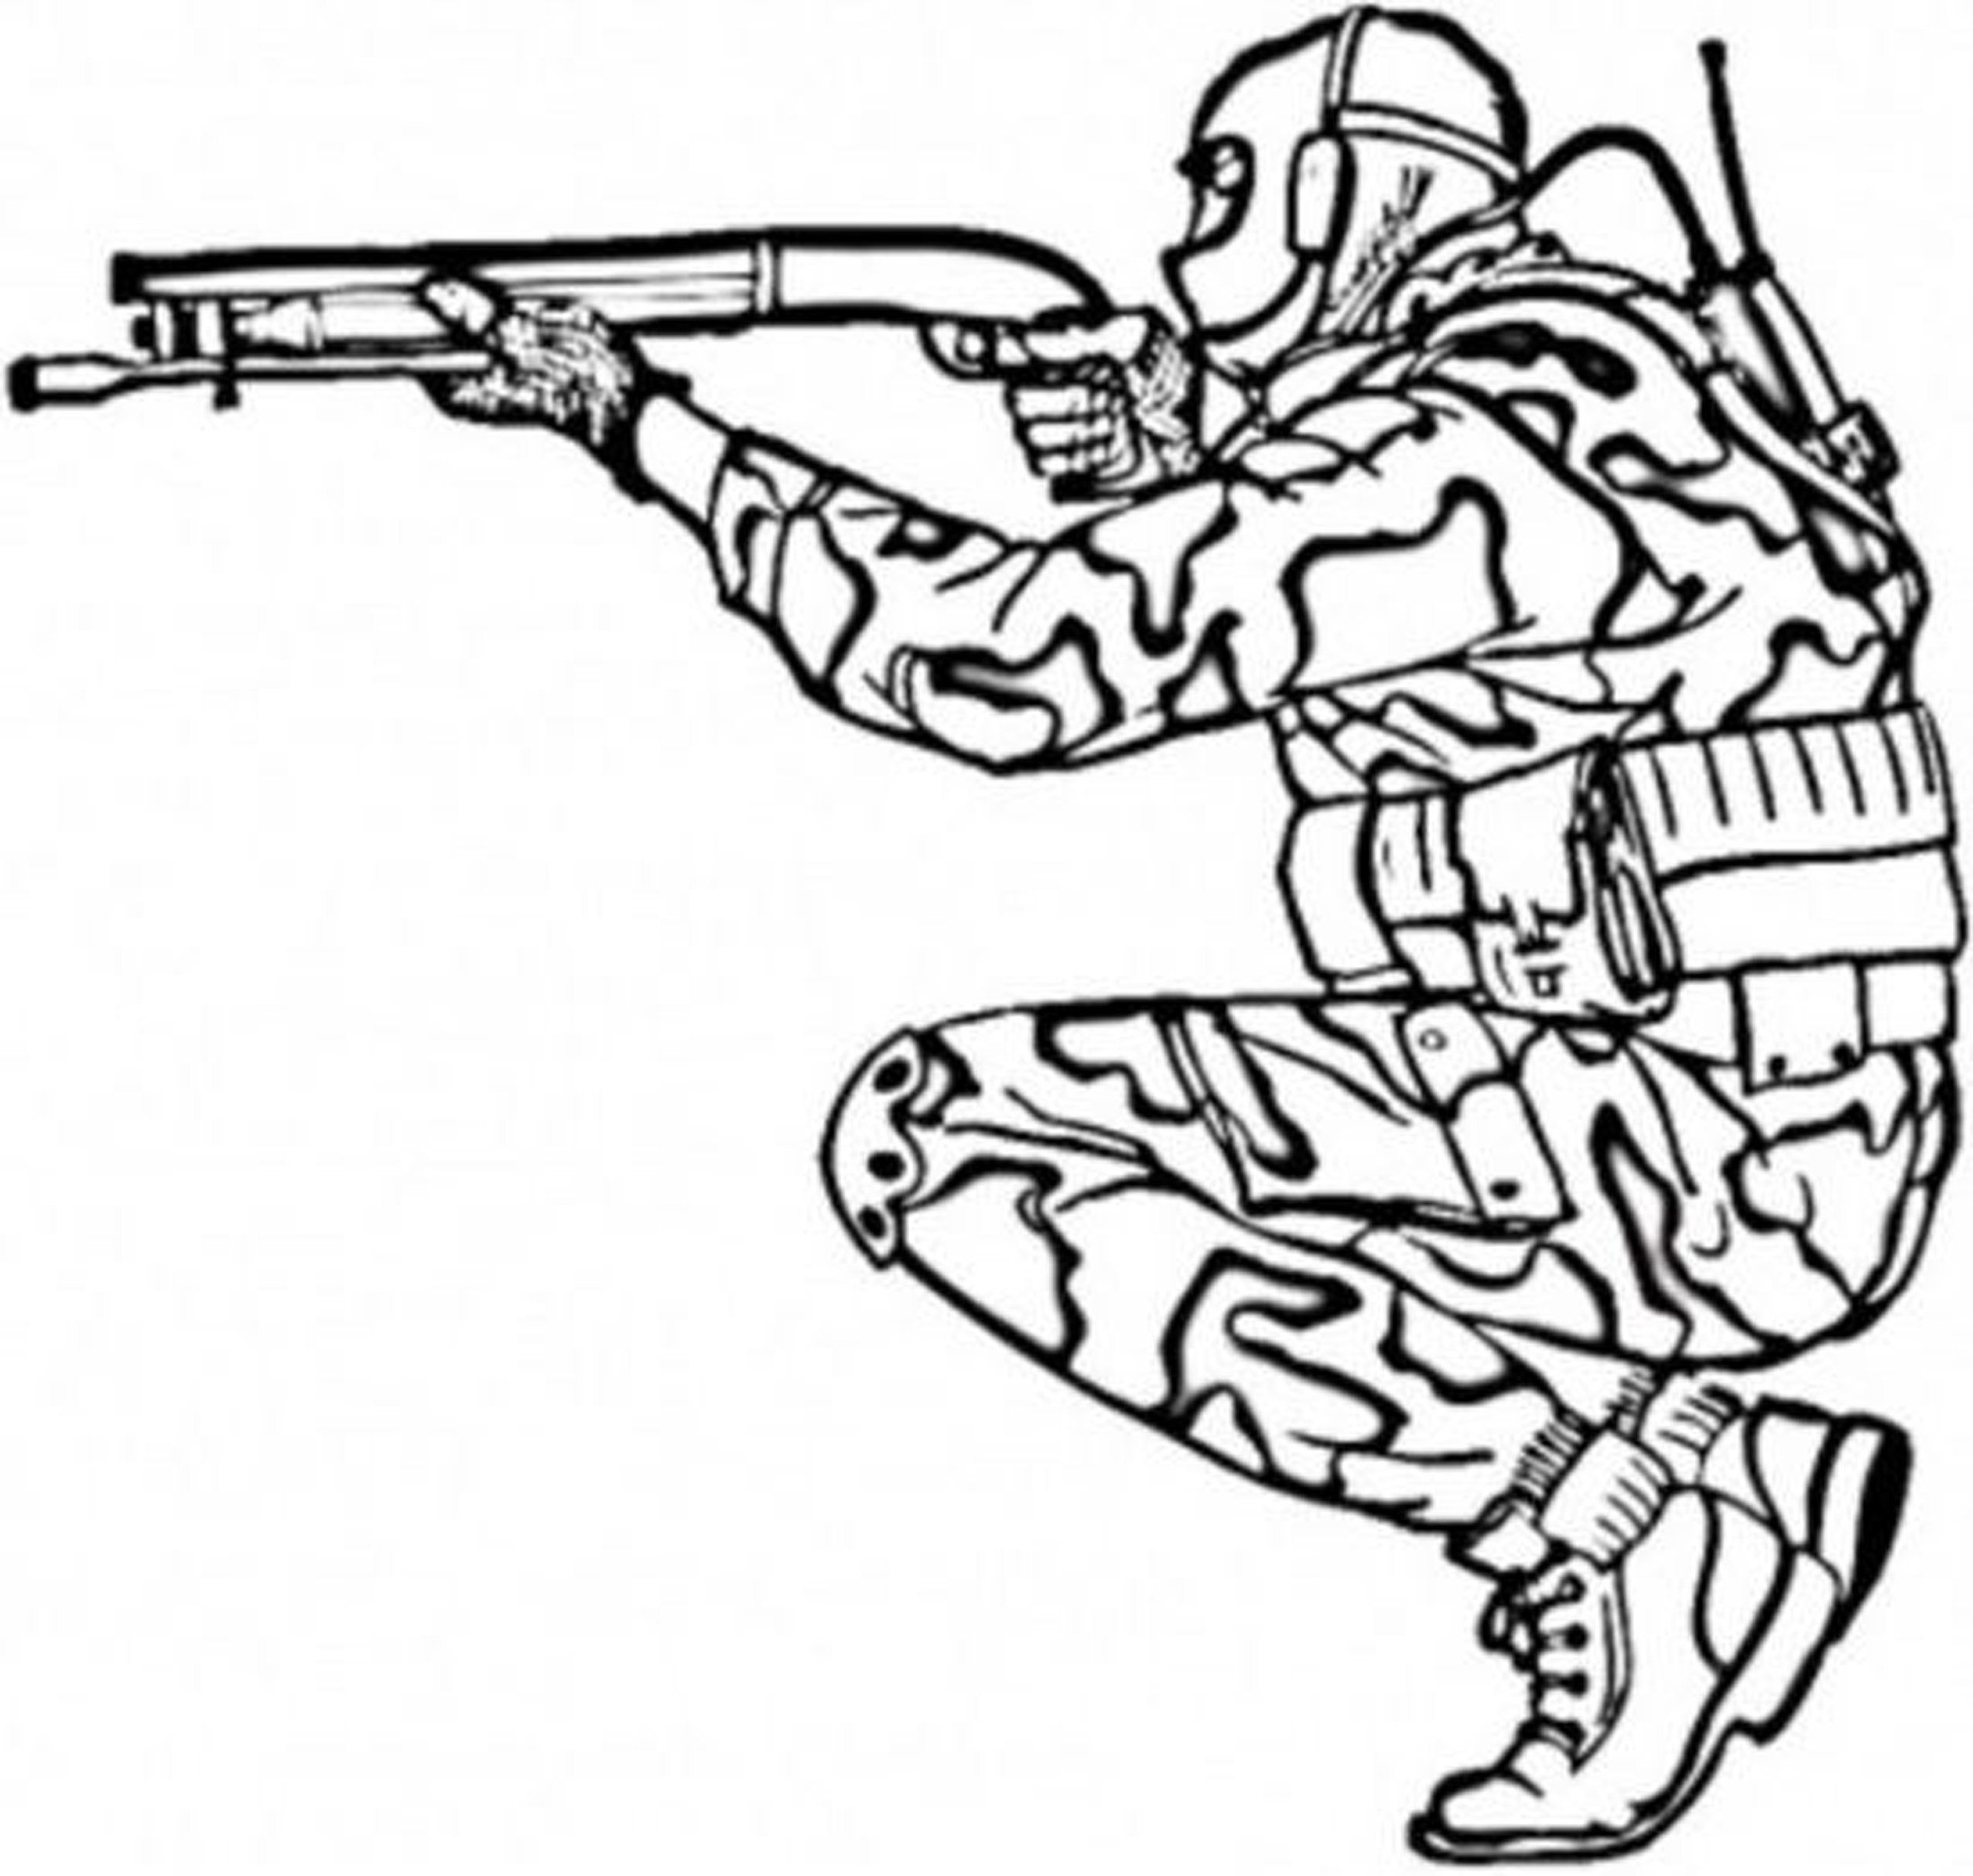 Printable Soldier Coloring Pages furthermore Coloring Pages For Teenagers Graffiti together with Can I Easily Tune The Mathdesign Fonts likewise 134425156  E5 8F A4 E5 85 B8 E5 85 A8 E7 89 9B E6 B2 99 E7 99 BC likewise File Flower of life 2level. on 7 way